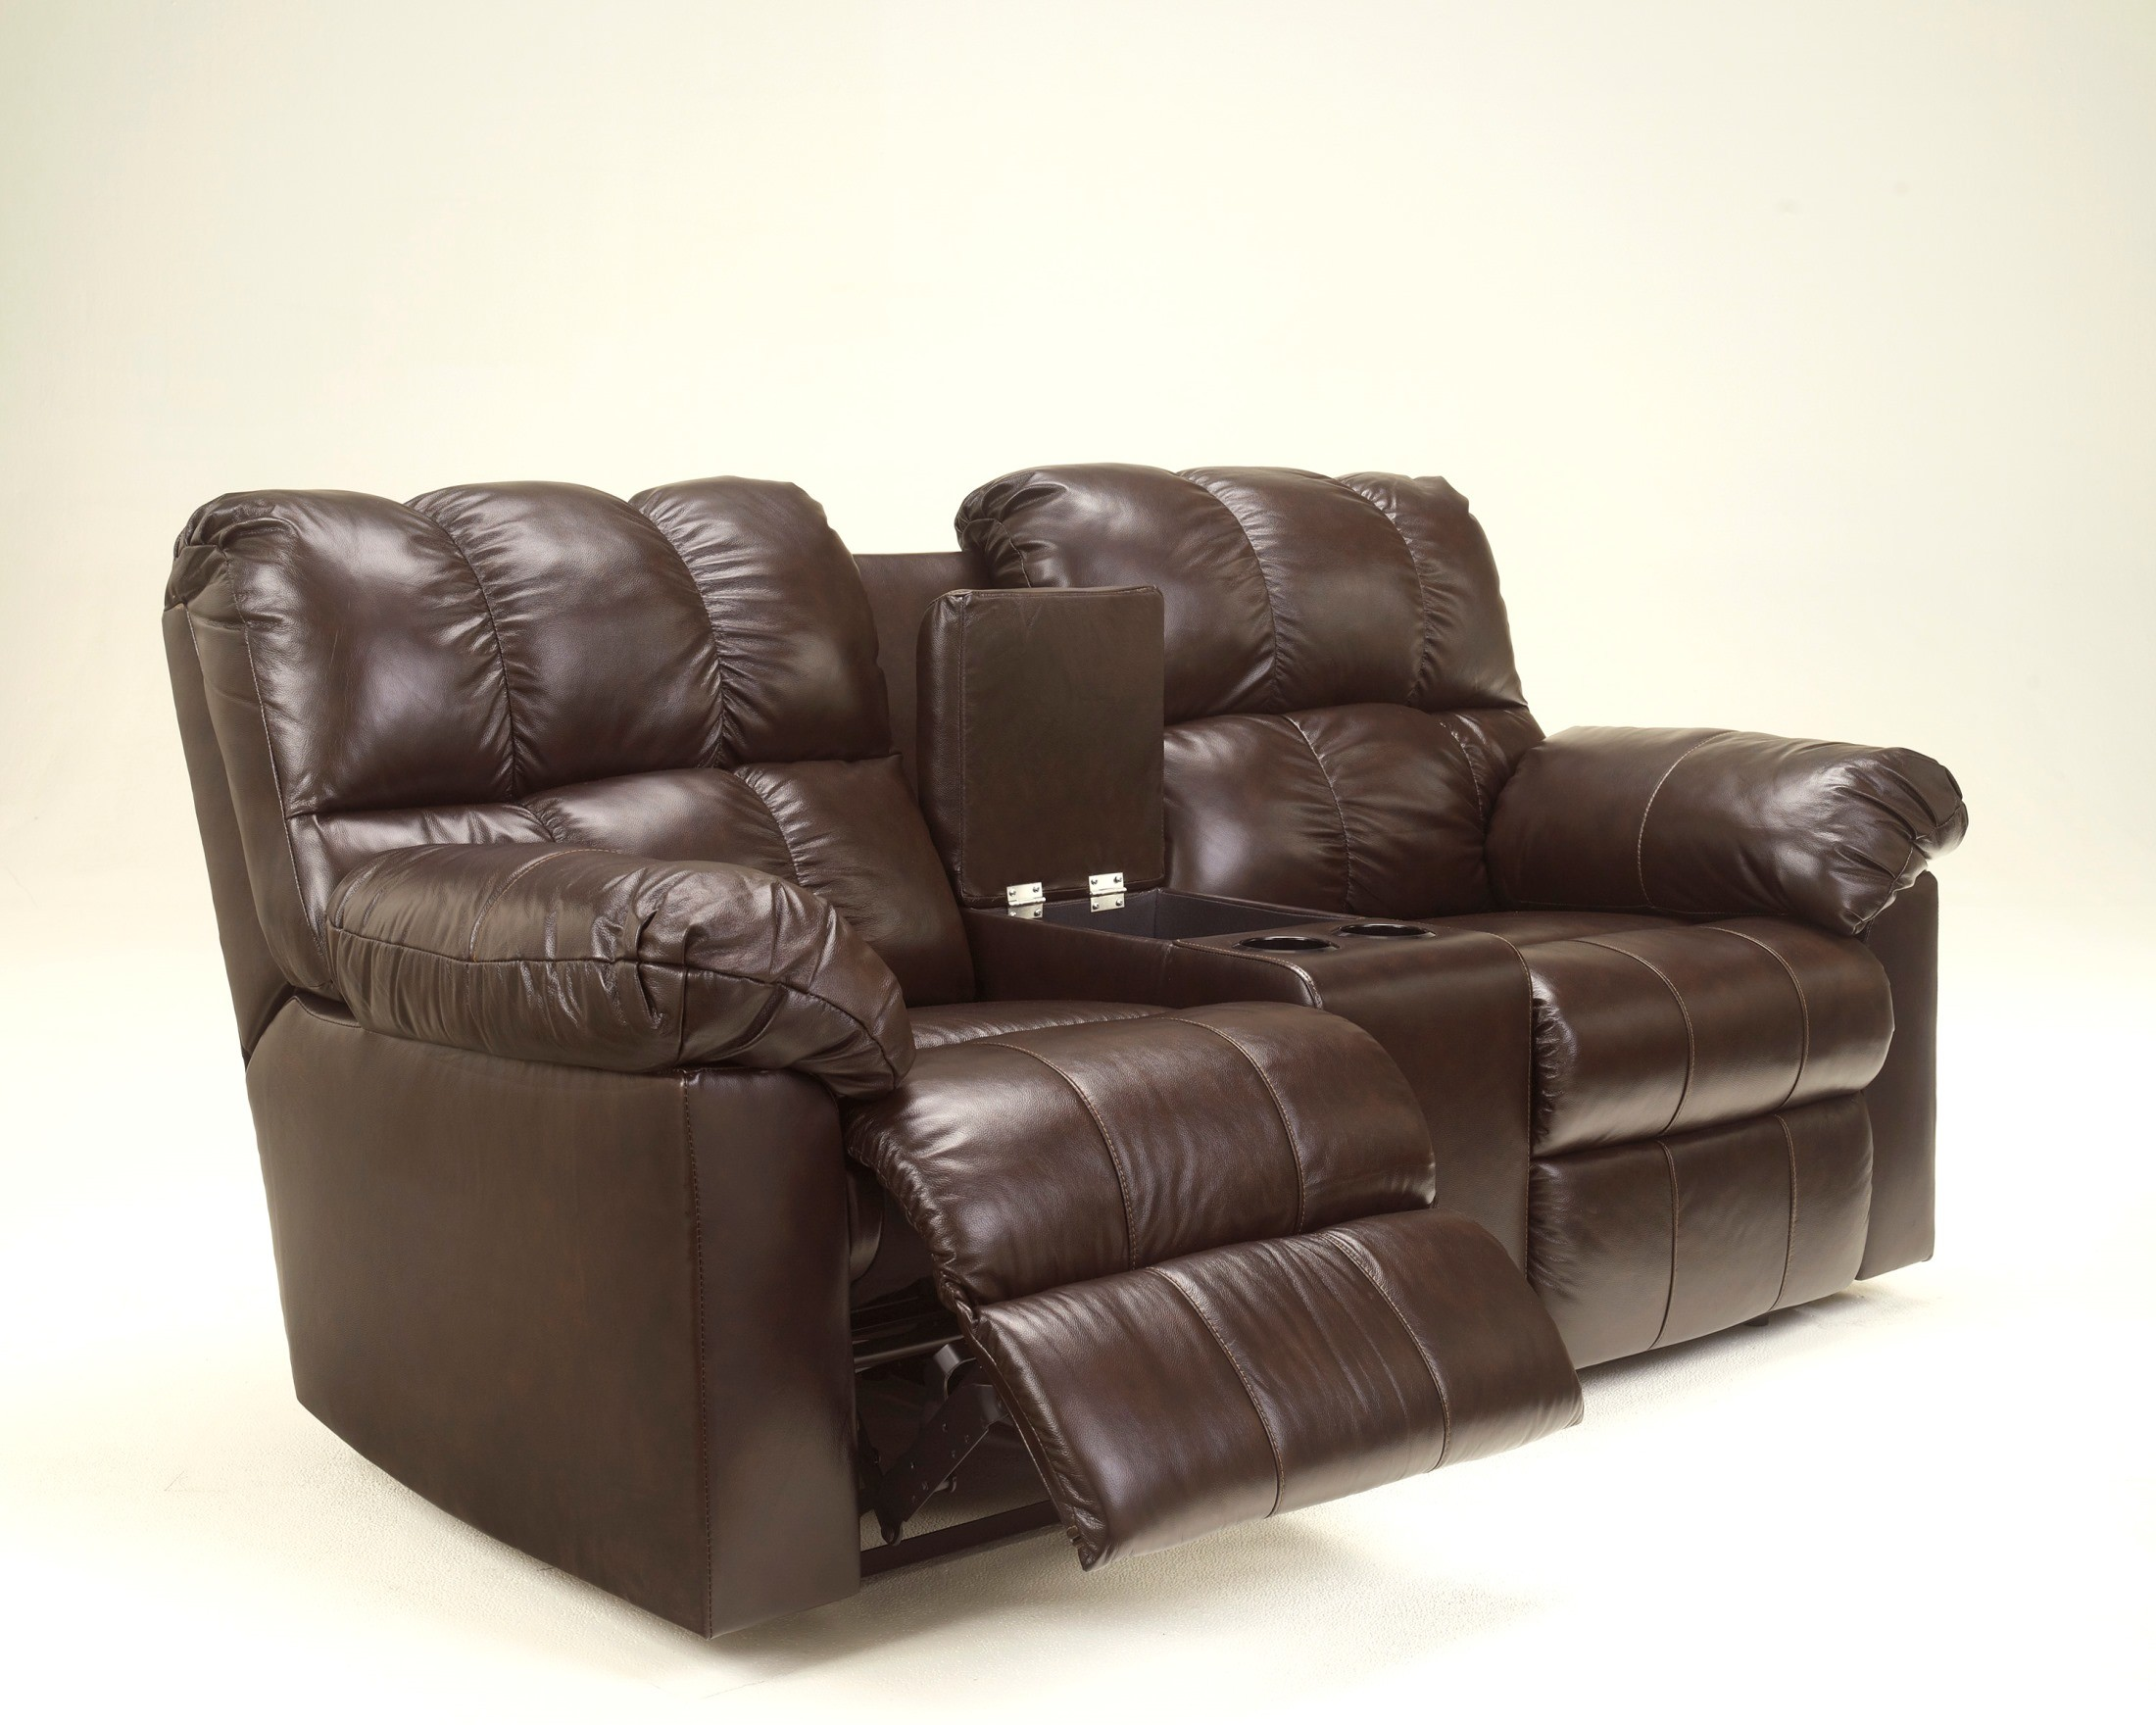 Kennard Chocolate Double Power Reclining Loveseat With Console From Ashley 2900196 Coleman